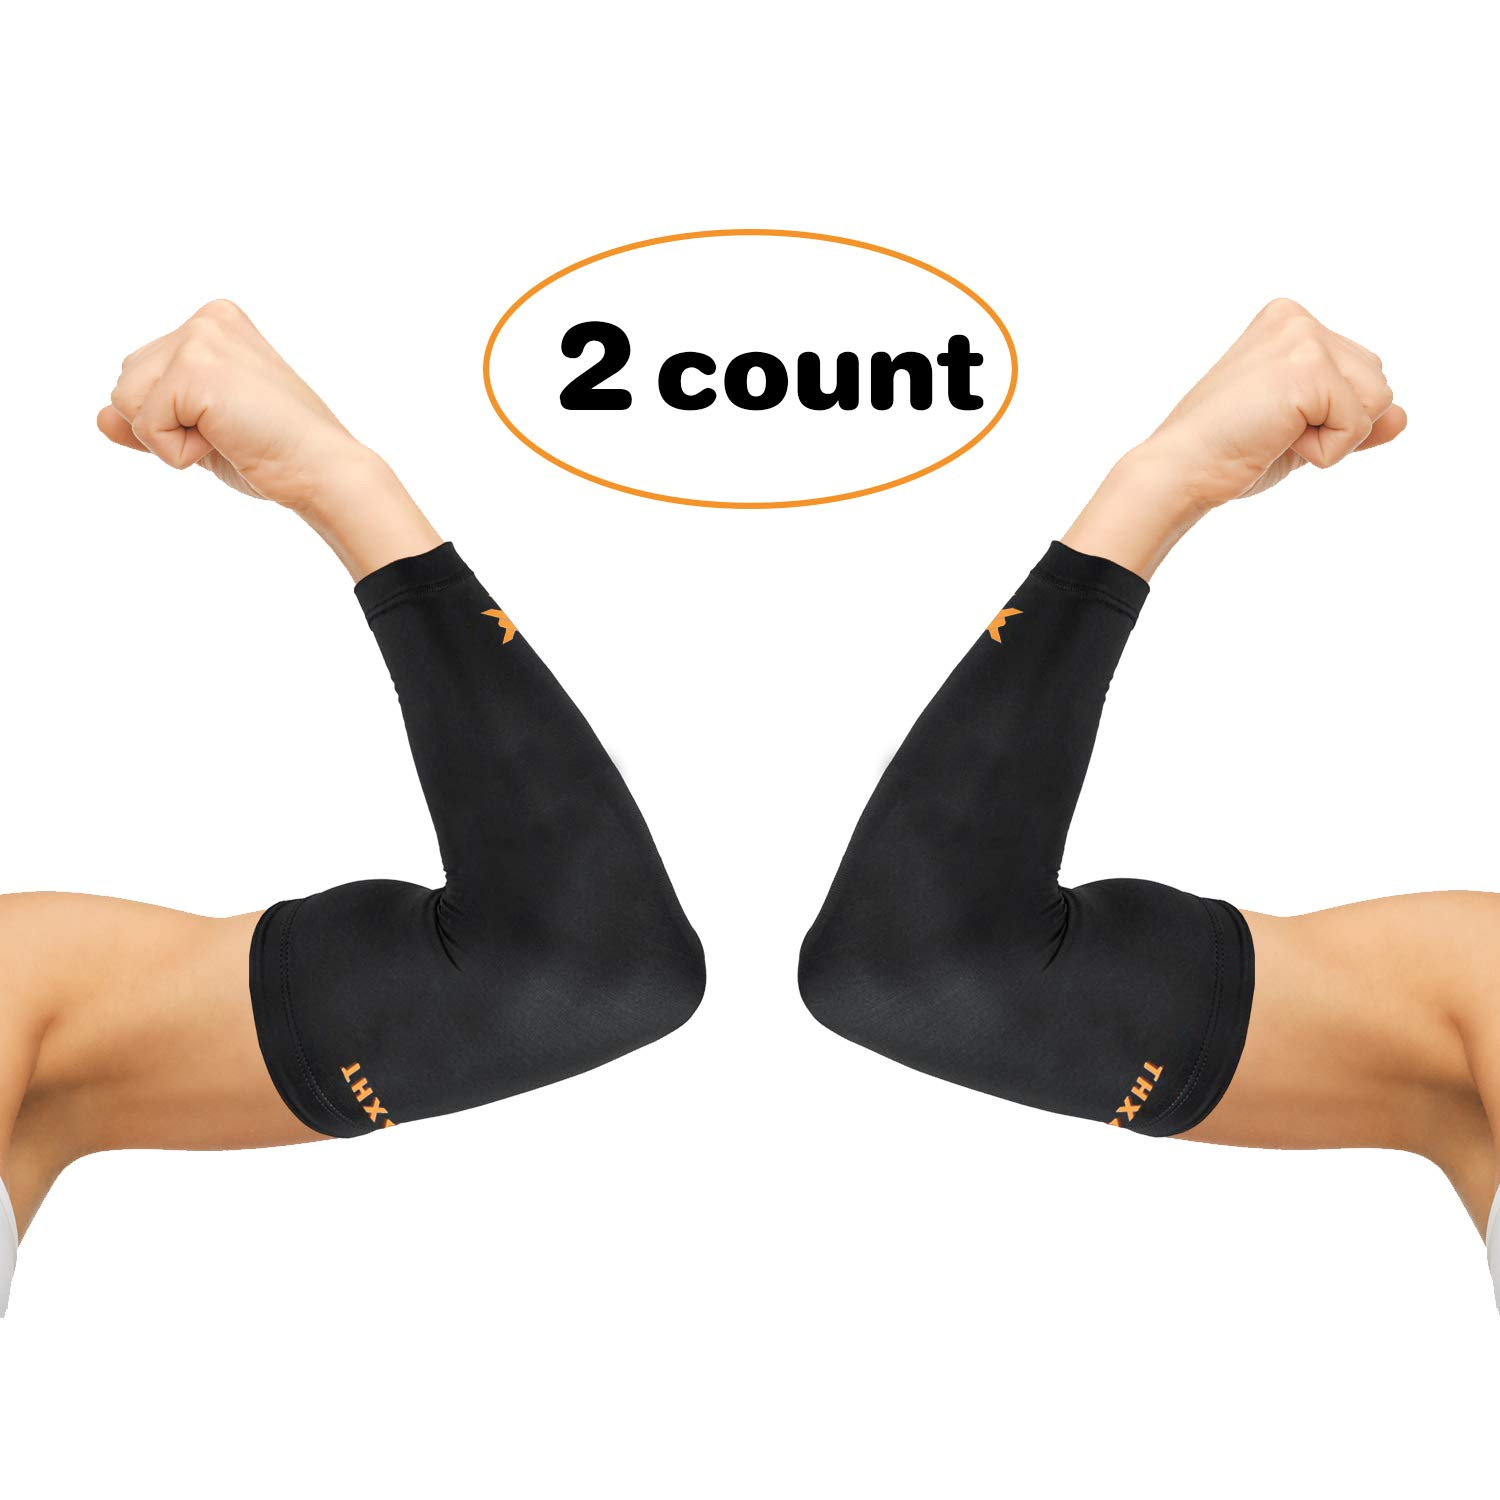 Thx4 Copper Elbow Compression Sleeve(1 Pair) - #1 Copper Infused Support –Guaranteed Recovery Copper Elbow Brace-Idea for Workouts, Sports, Golfers, Tennis Elbow, Arthritis, Tendonitis-Large